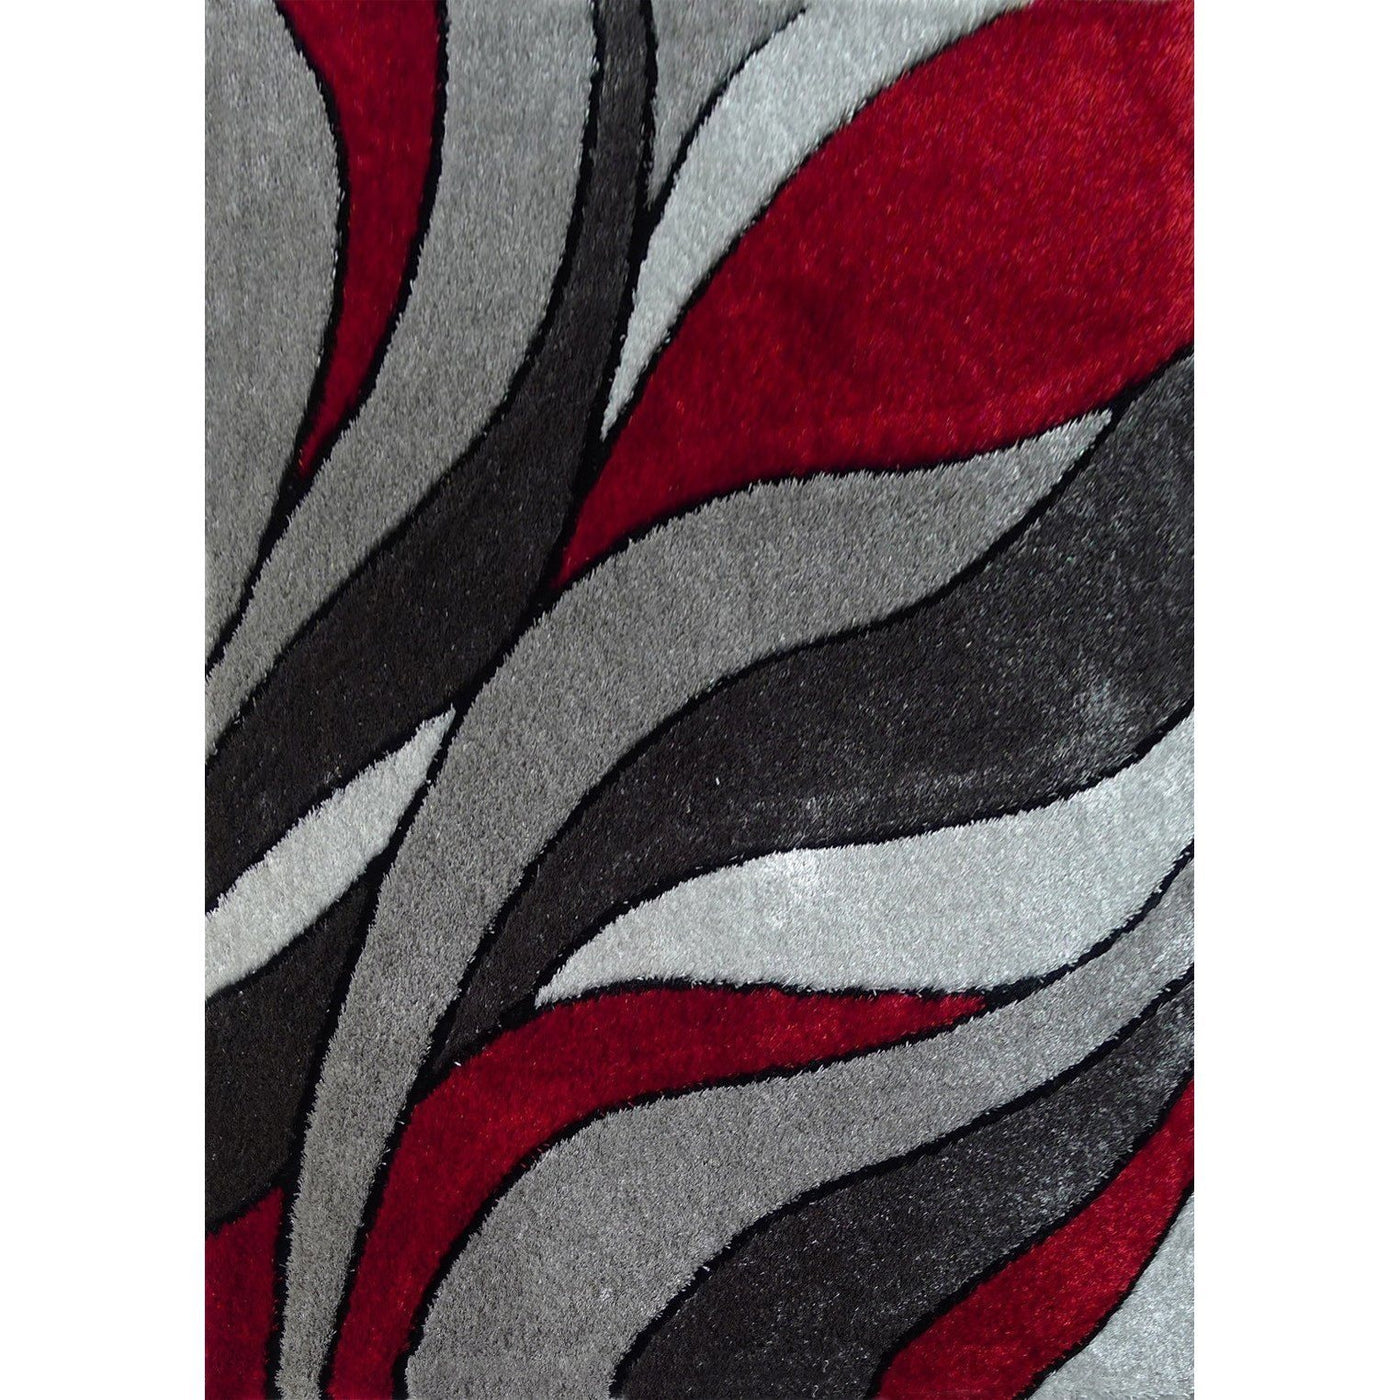 cowhide inspiration natural rugs off beautiful photo home x sets metallic grey elegant modern blue large on area rug gold design and ideas red from of also co white outstanding bathroom